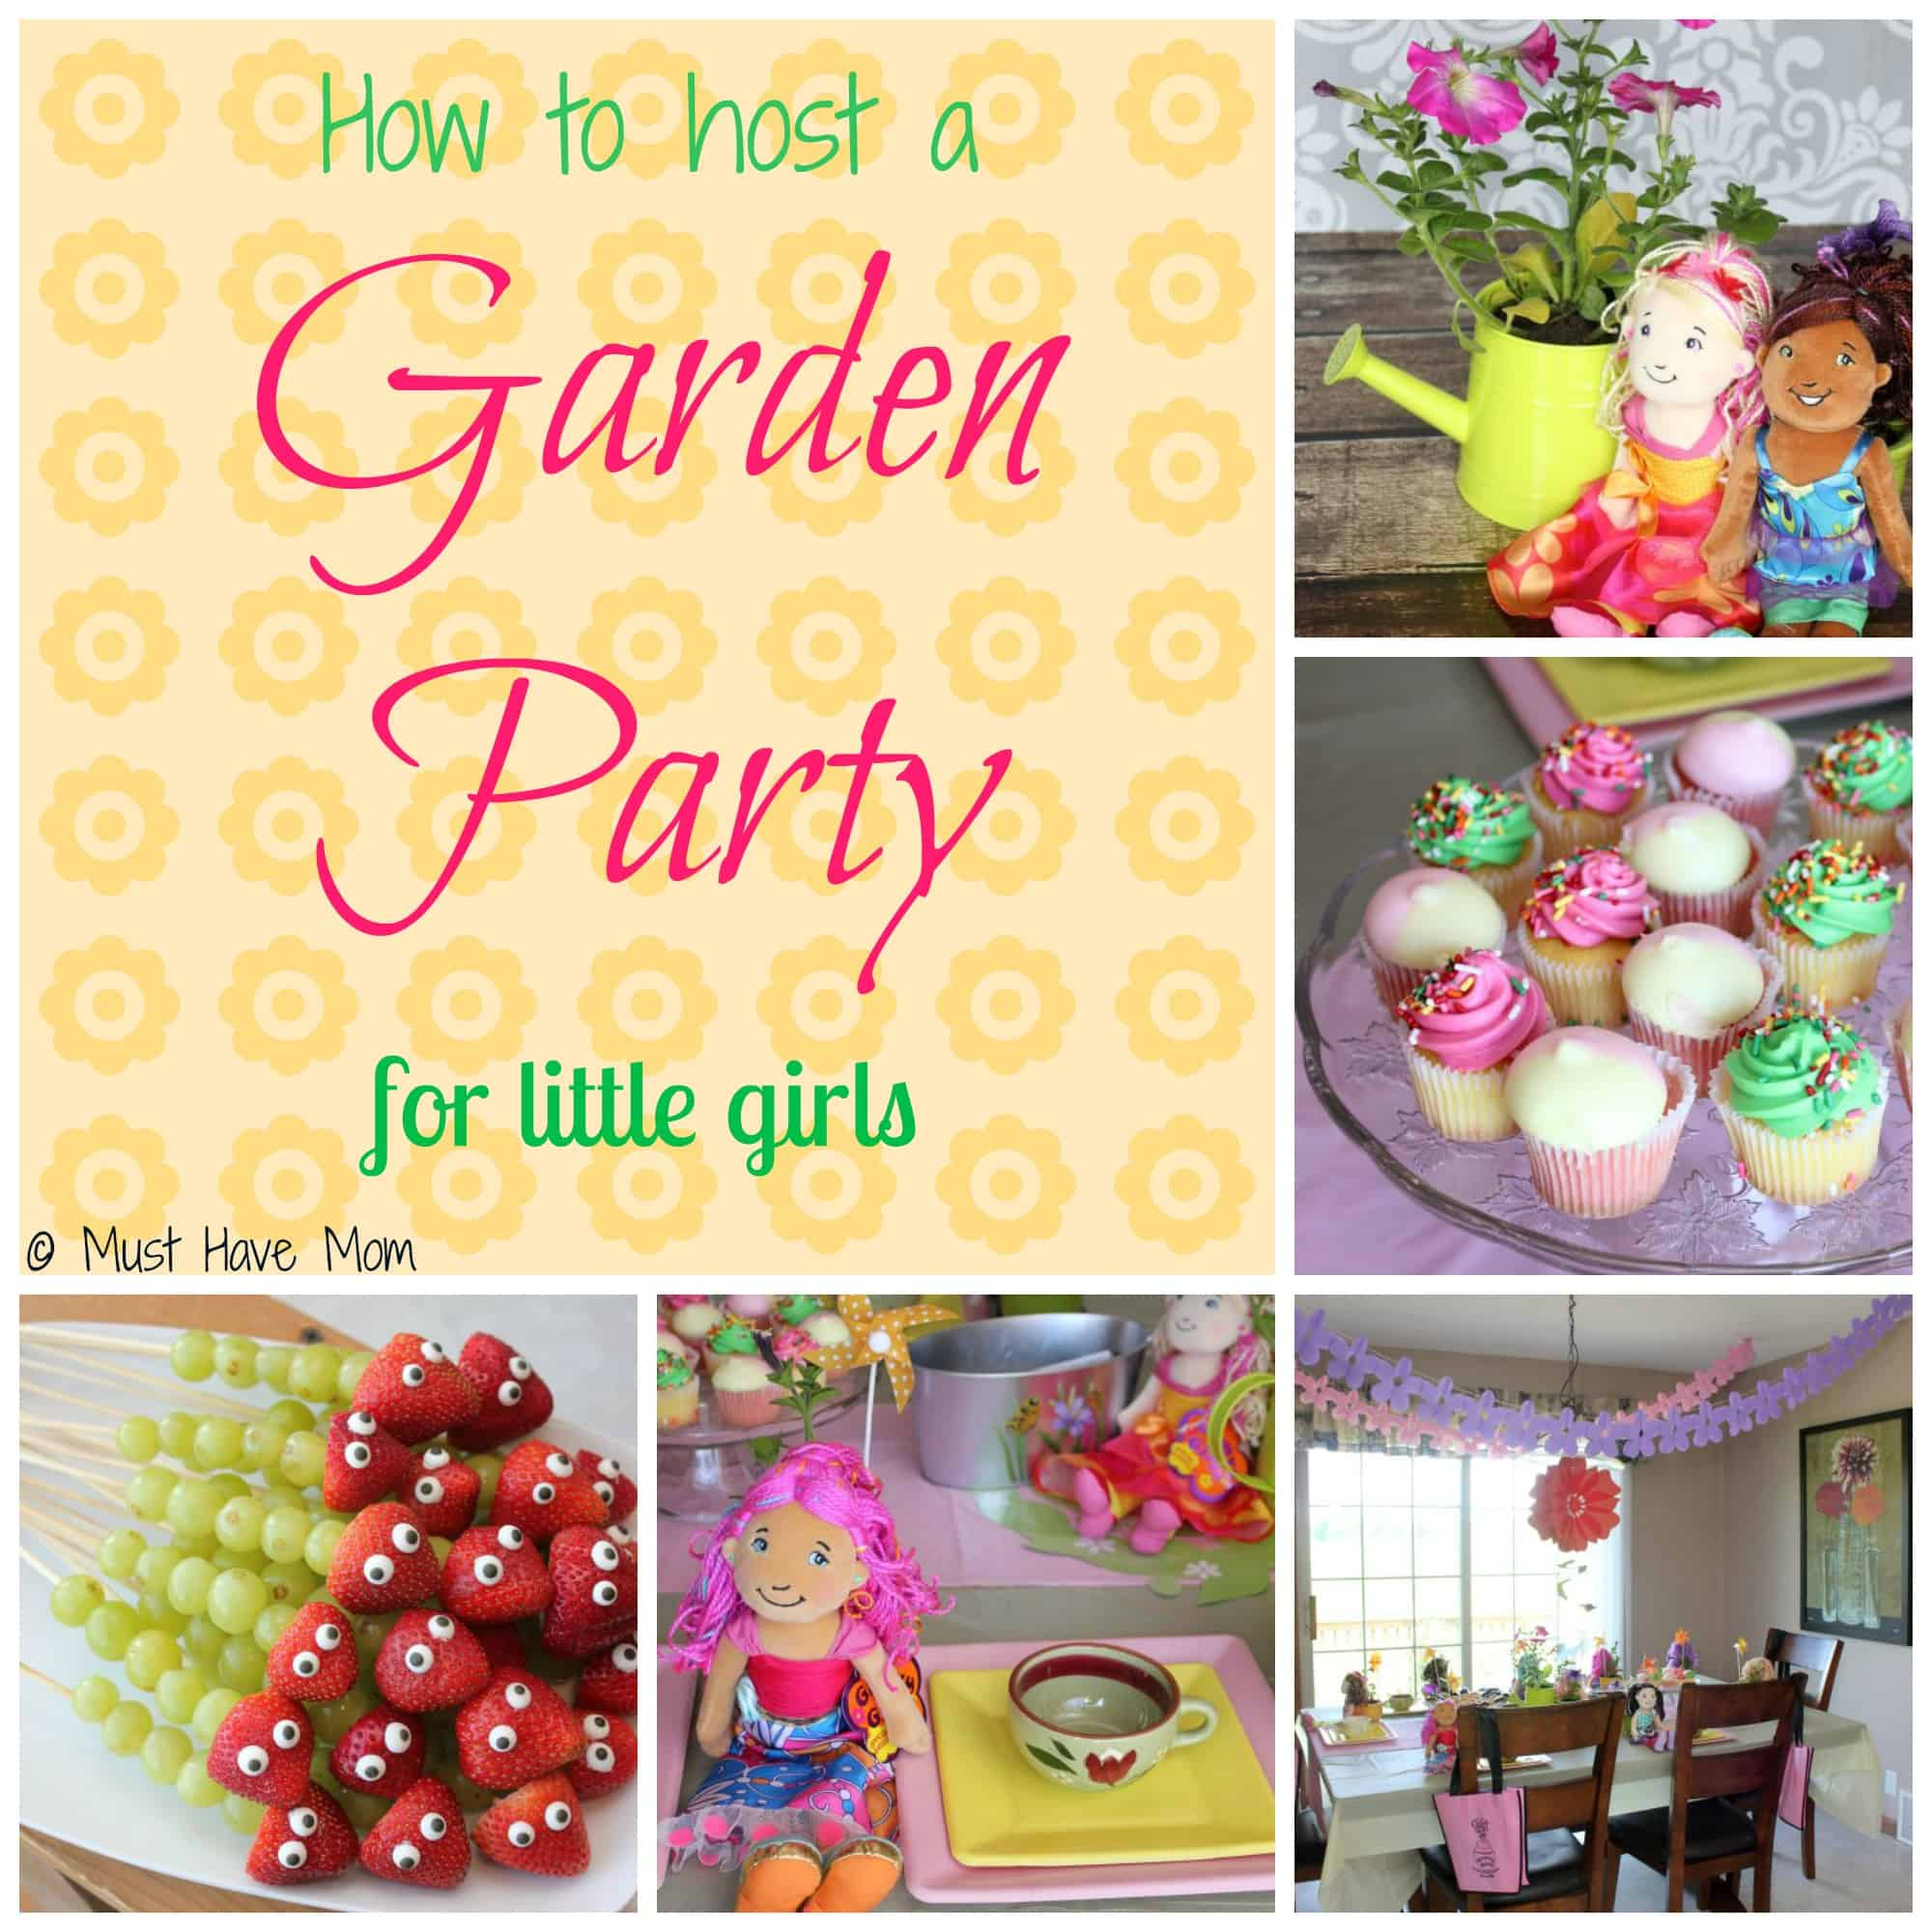 How To Host A Garden Party For Little Girls